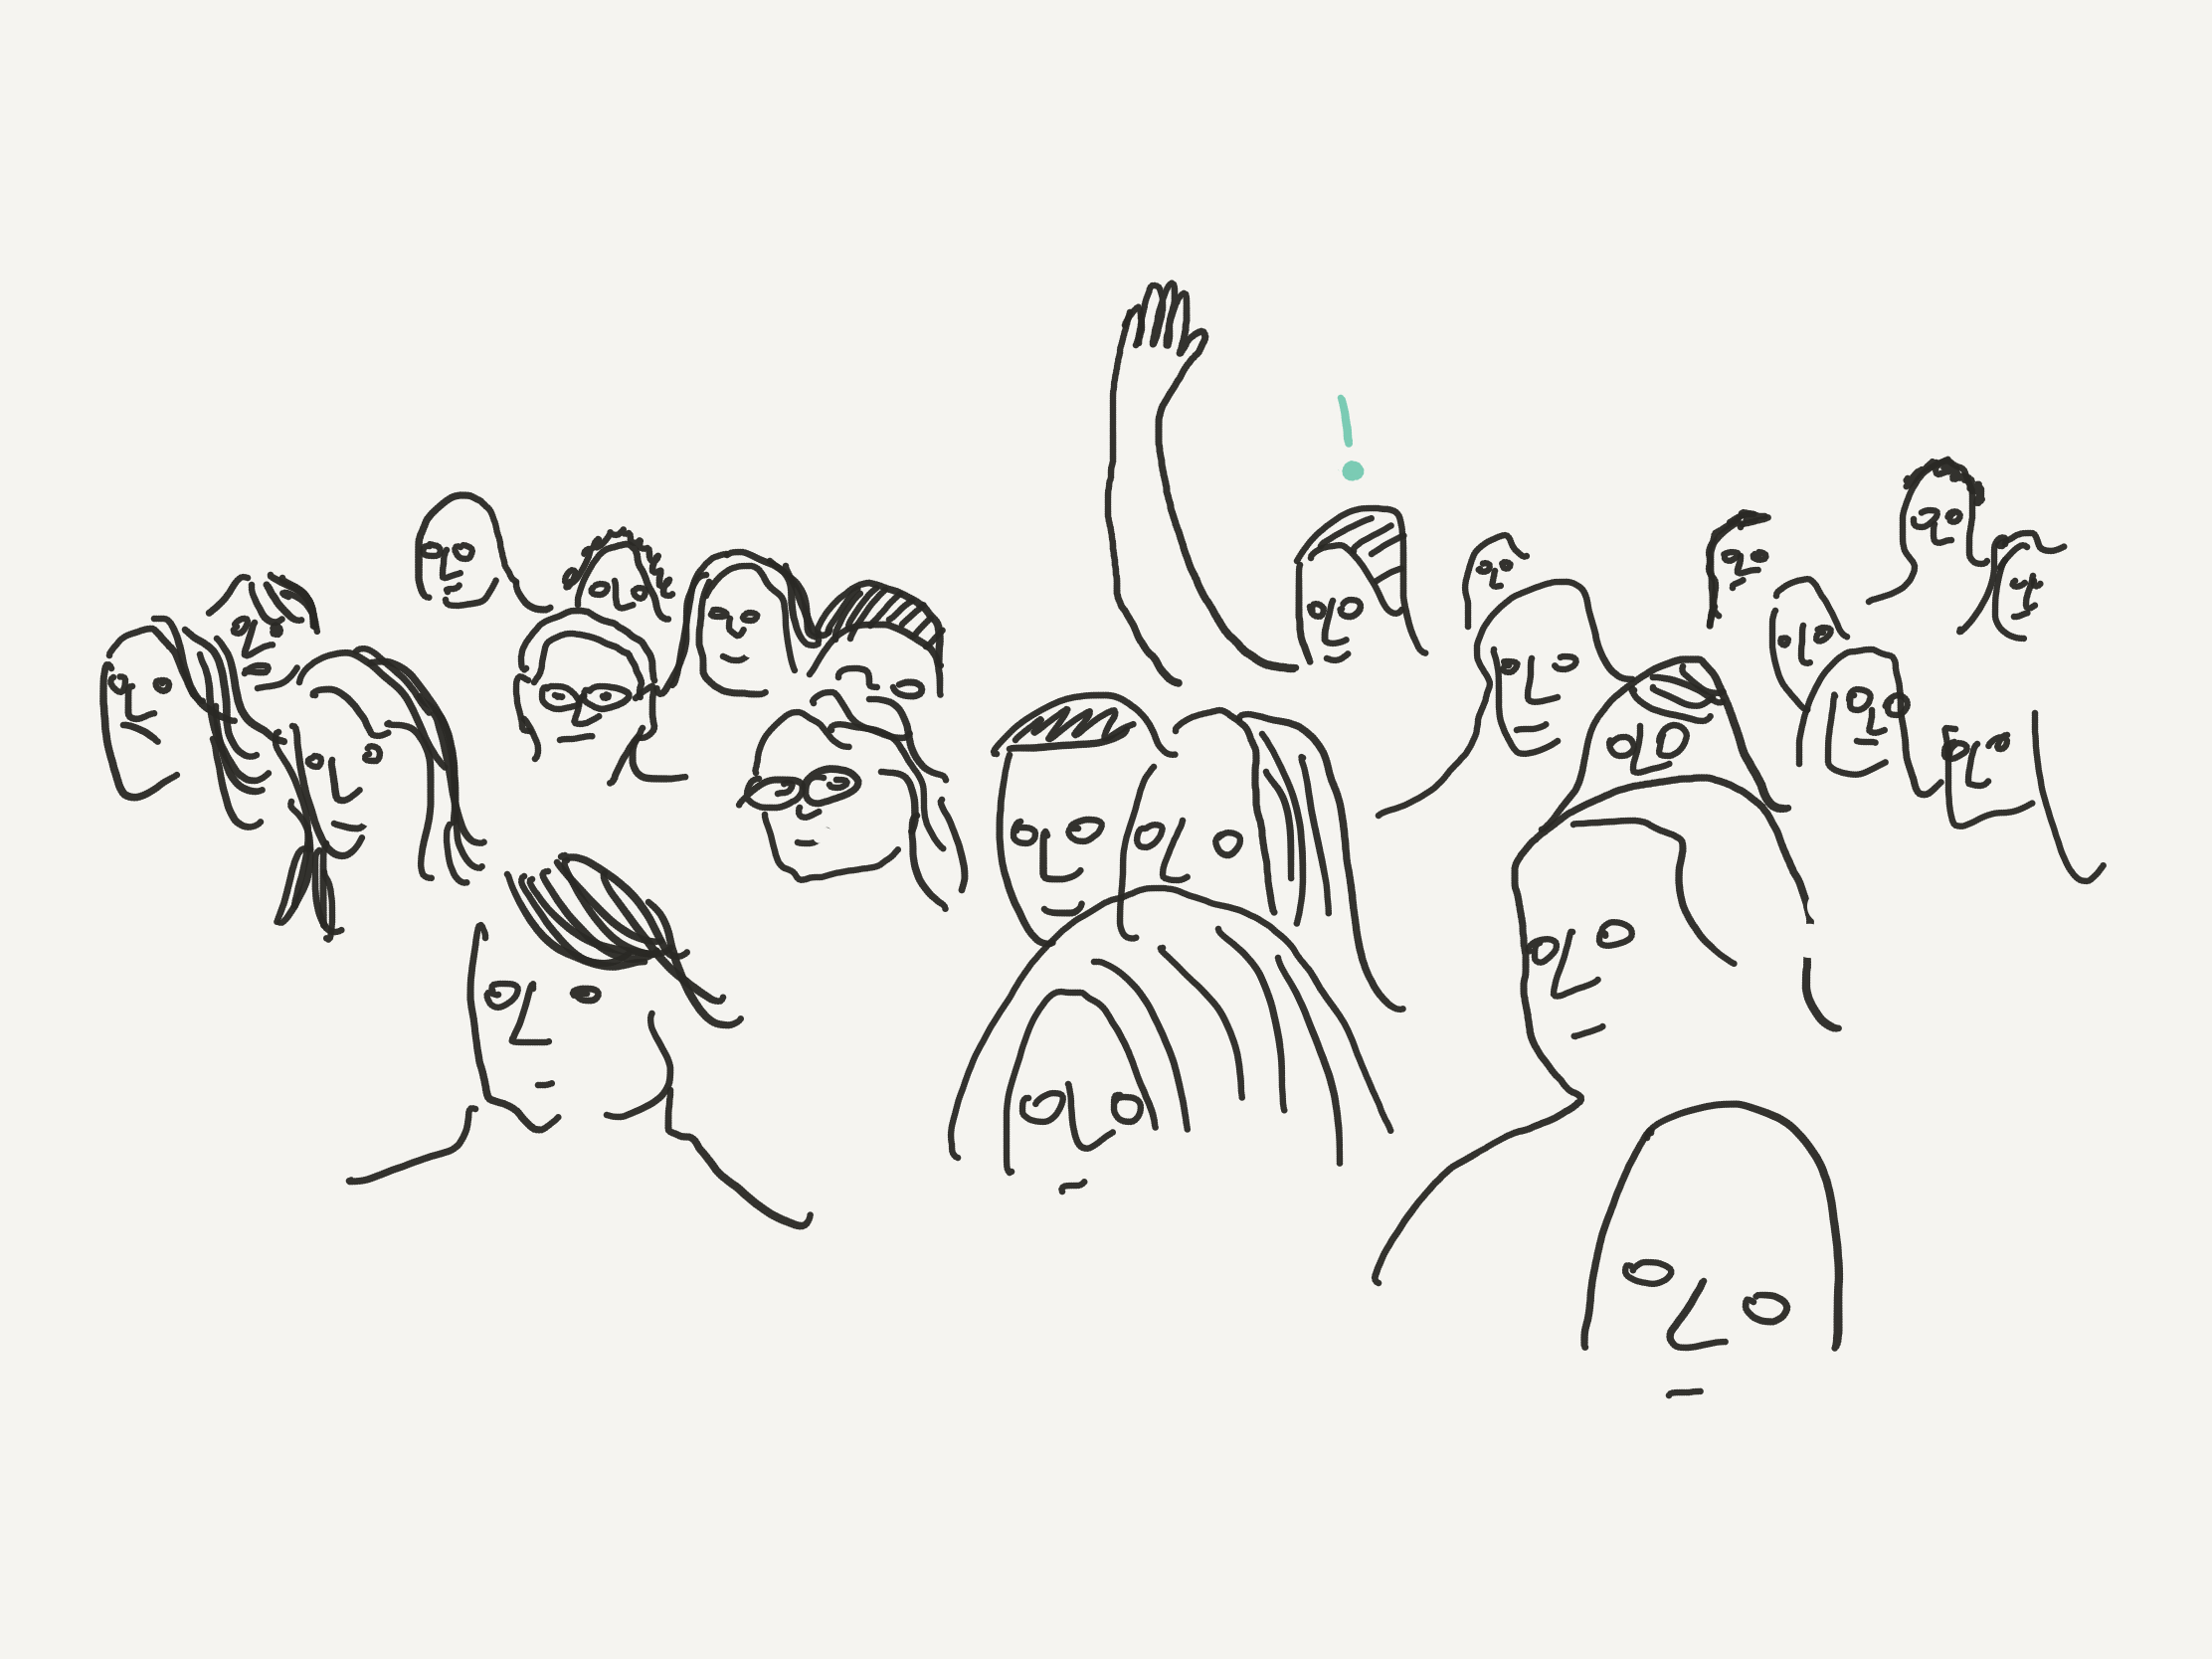 person in crowd of faces with their hand up and an idea